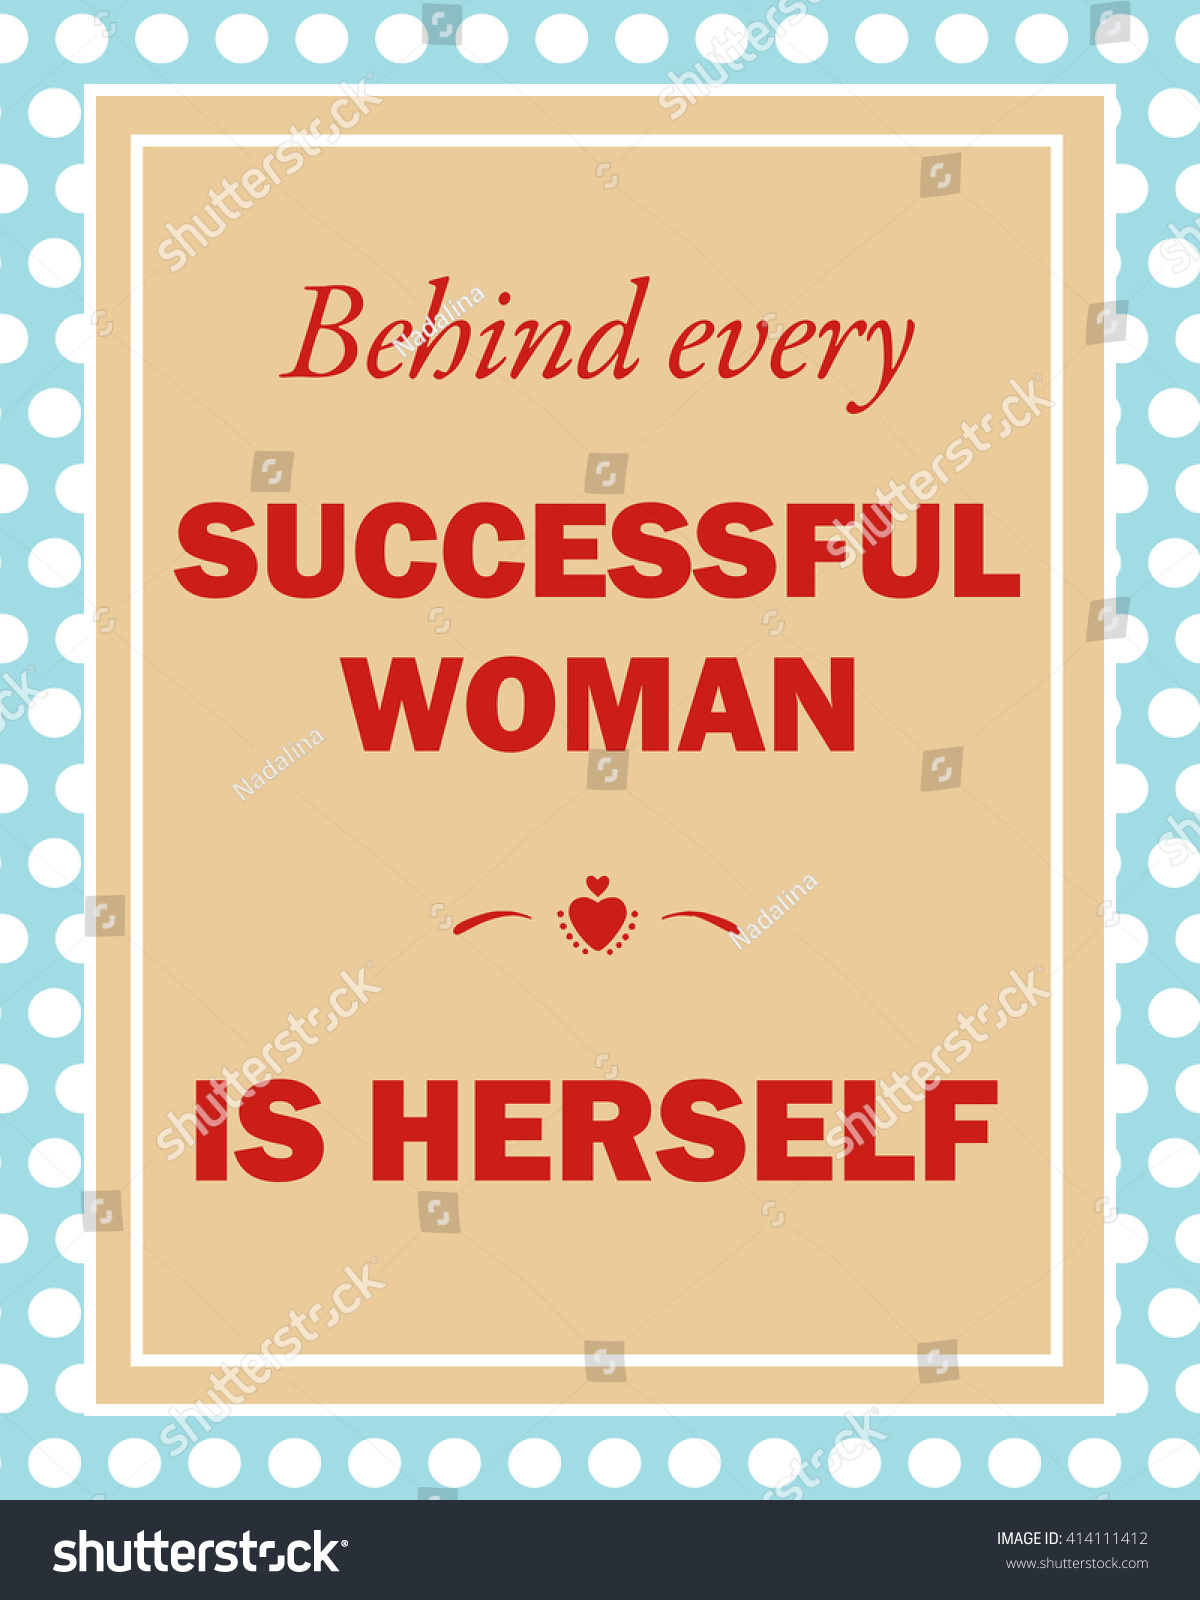 behind every successful w herself vector stock vector behind every successful w is herself vector illustration